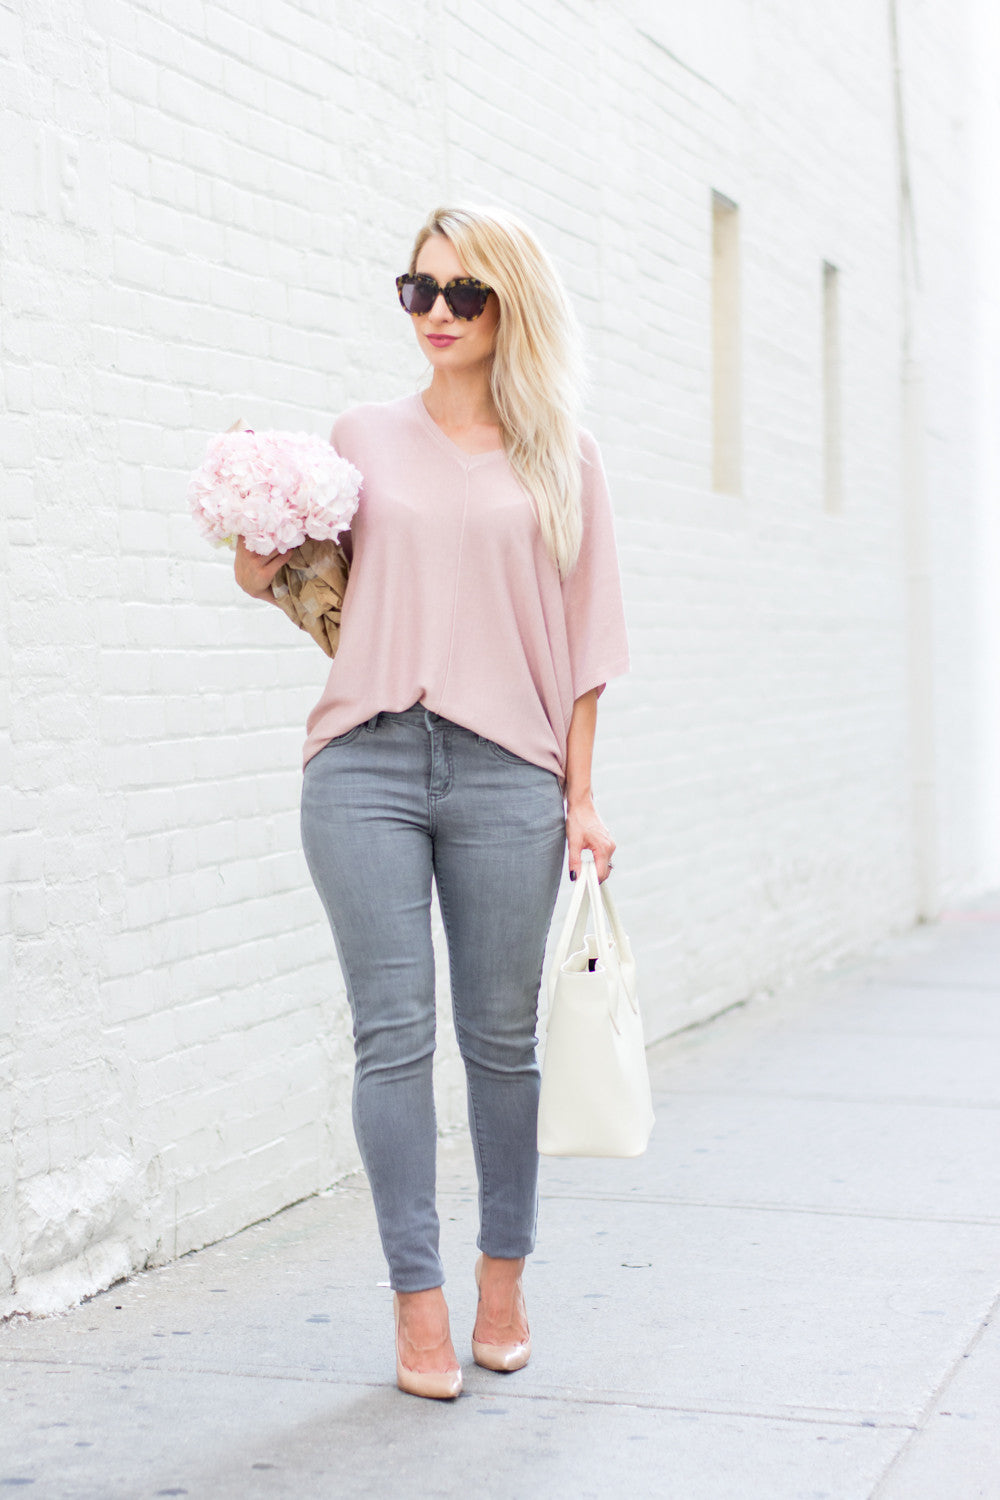 OOTD - GREY AND PINK WITH JOE FRESH by @lapetitenoob